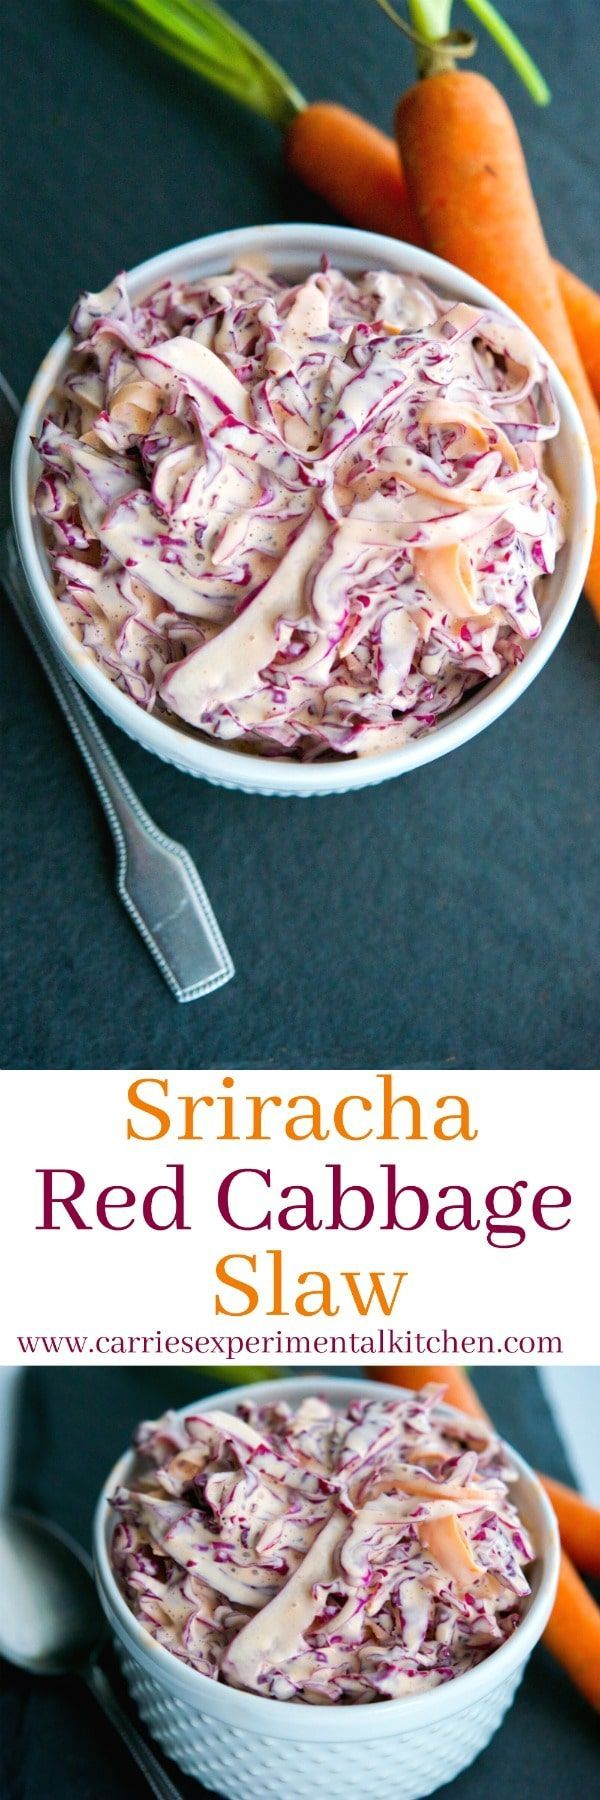 Coleslaw clipart soup and salad With little cabbage The a